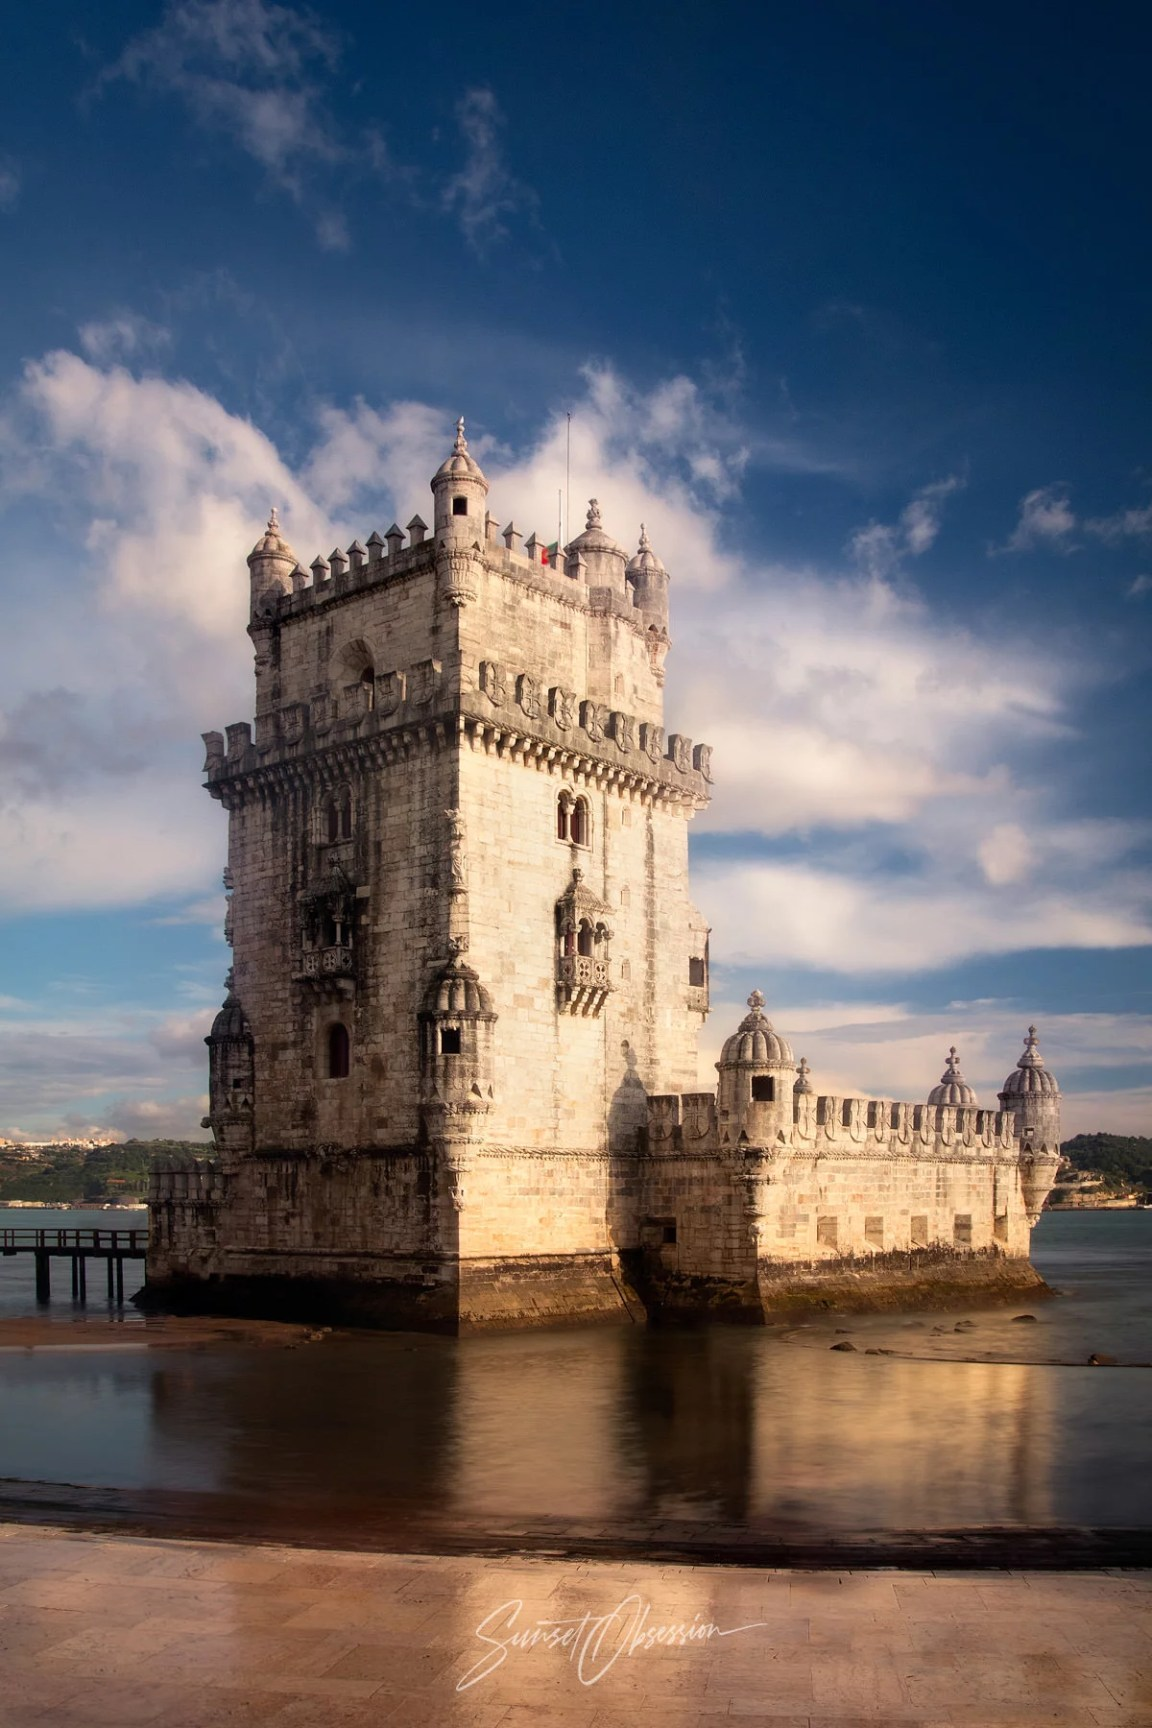 Tower of Belem is one of the more famous locations in our Lisbon photography guide